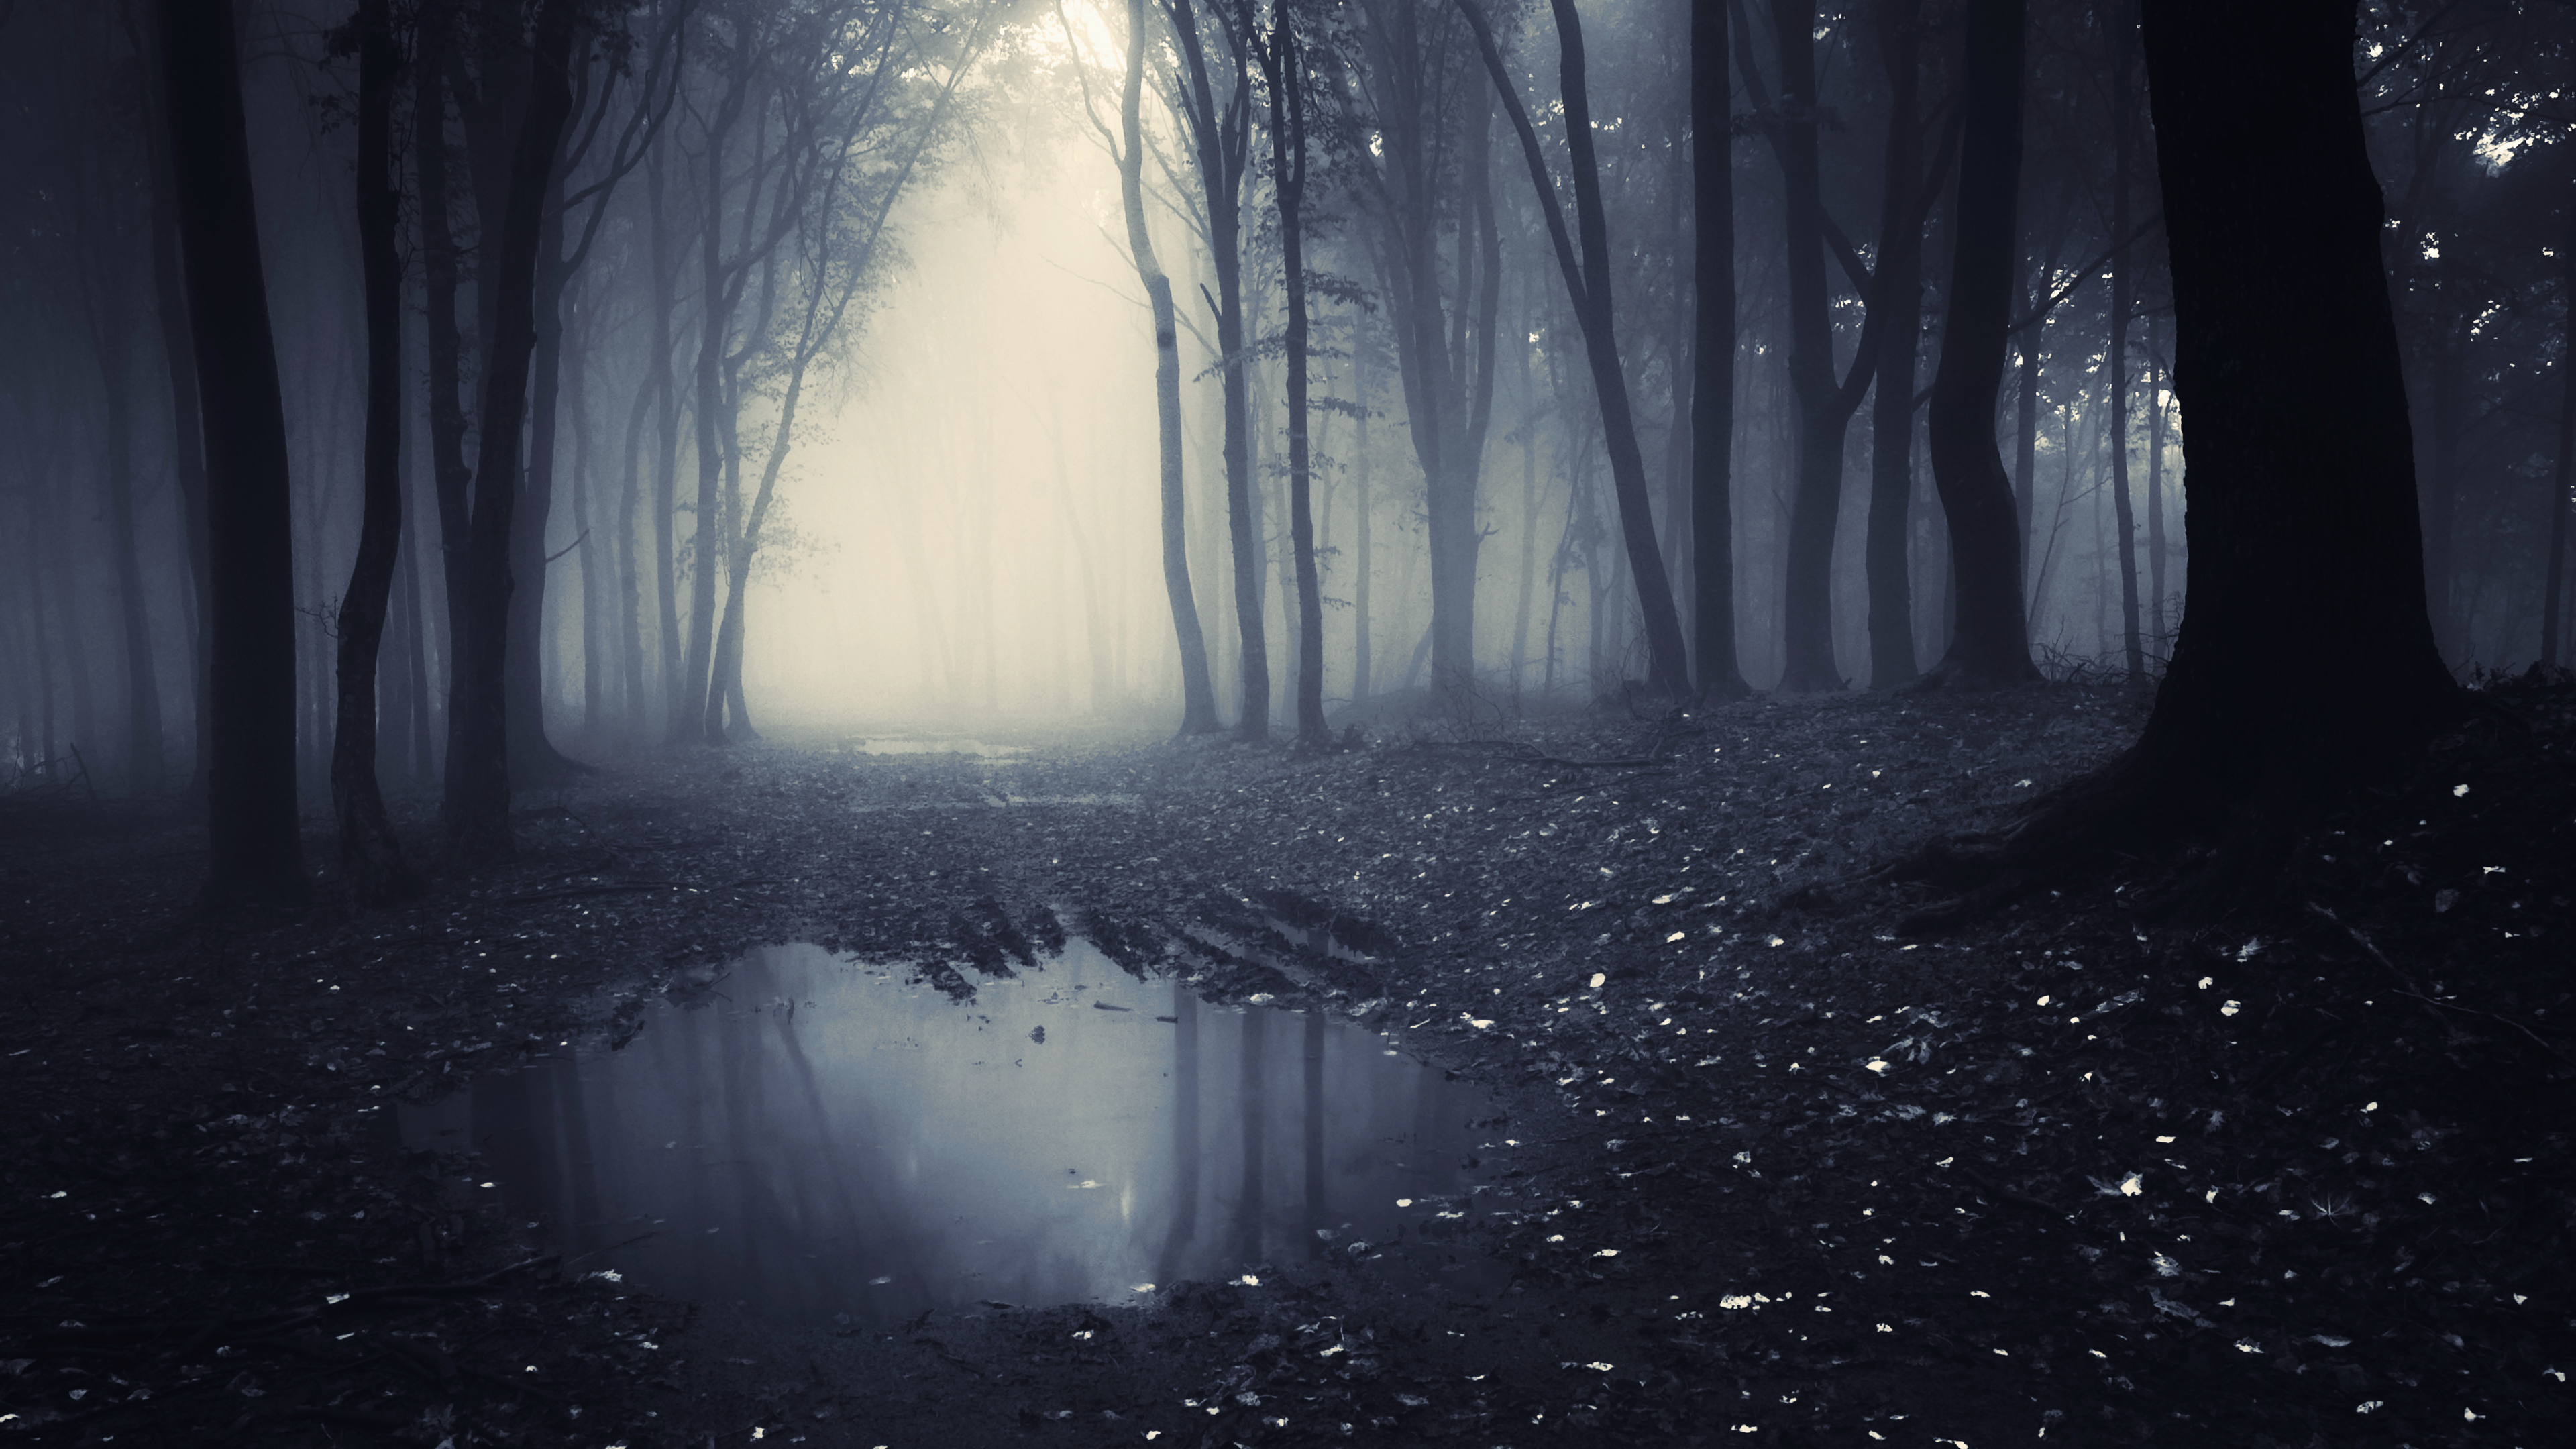 download free hd dark forest desktop wallpaper in 4k 0131